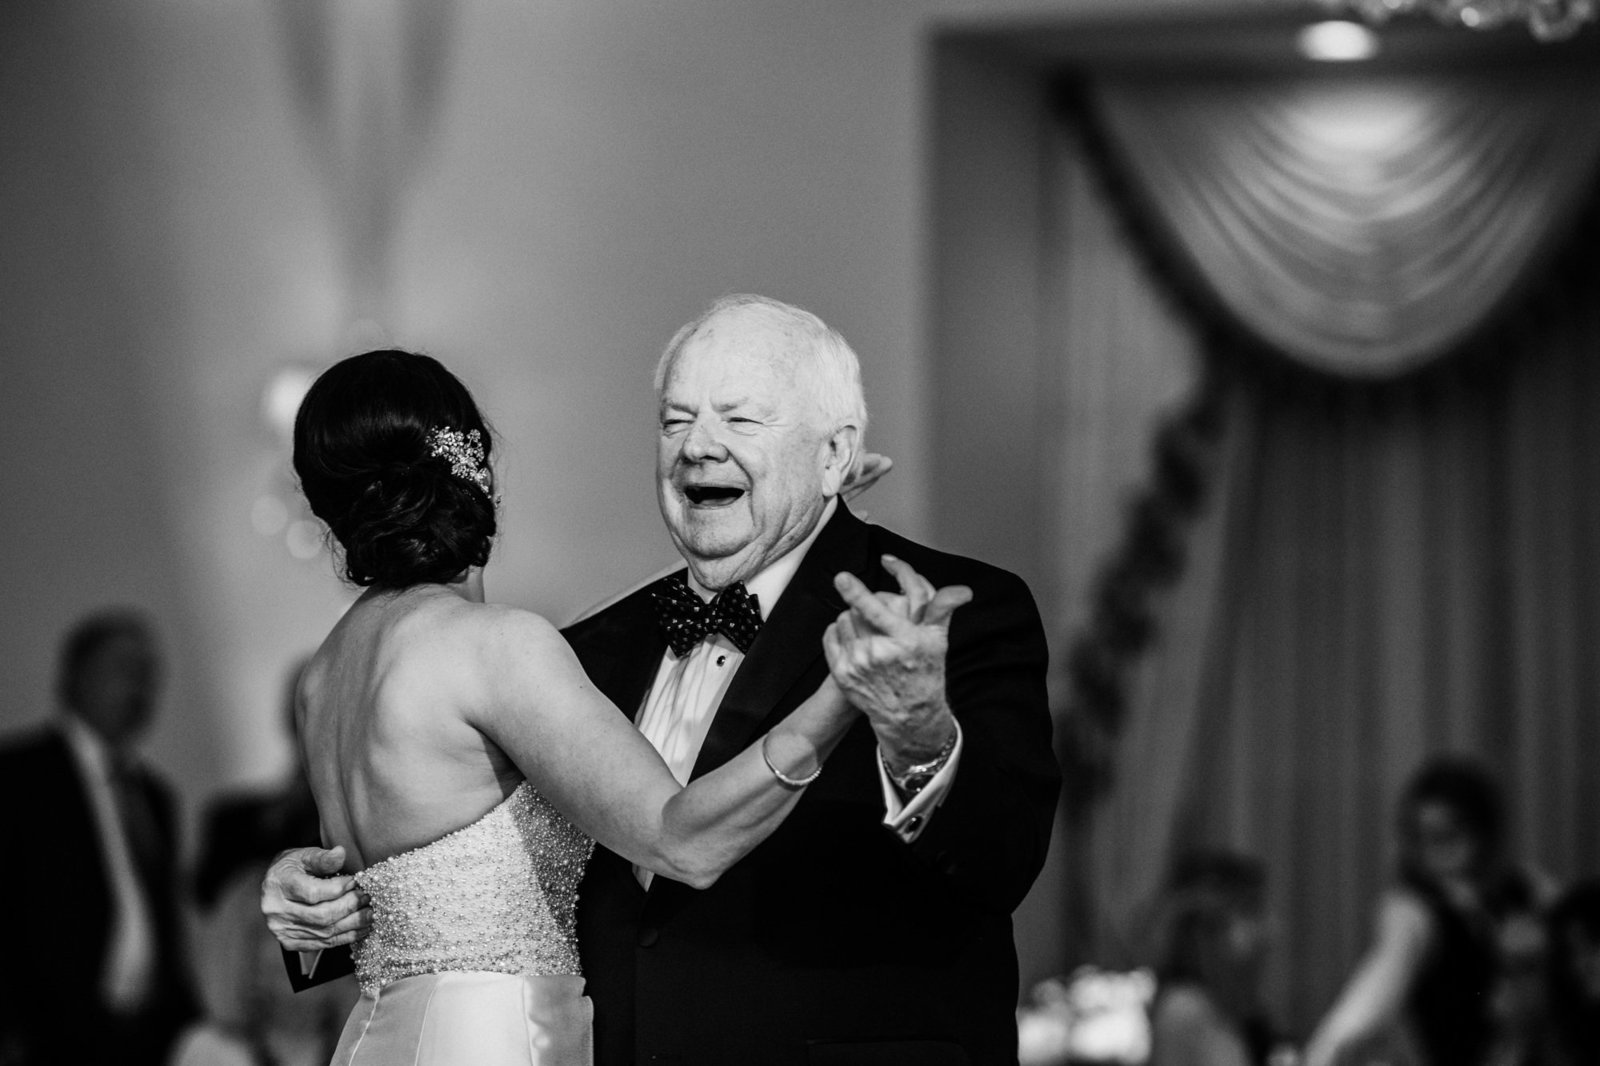 a fathers laughs and smiles while dancing with his daughter at her wedding